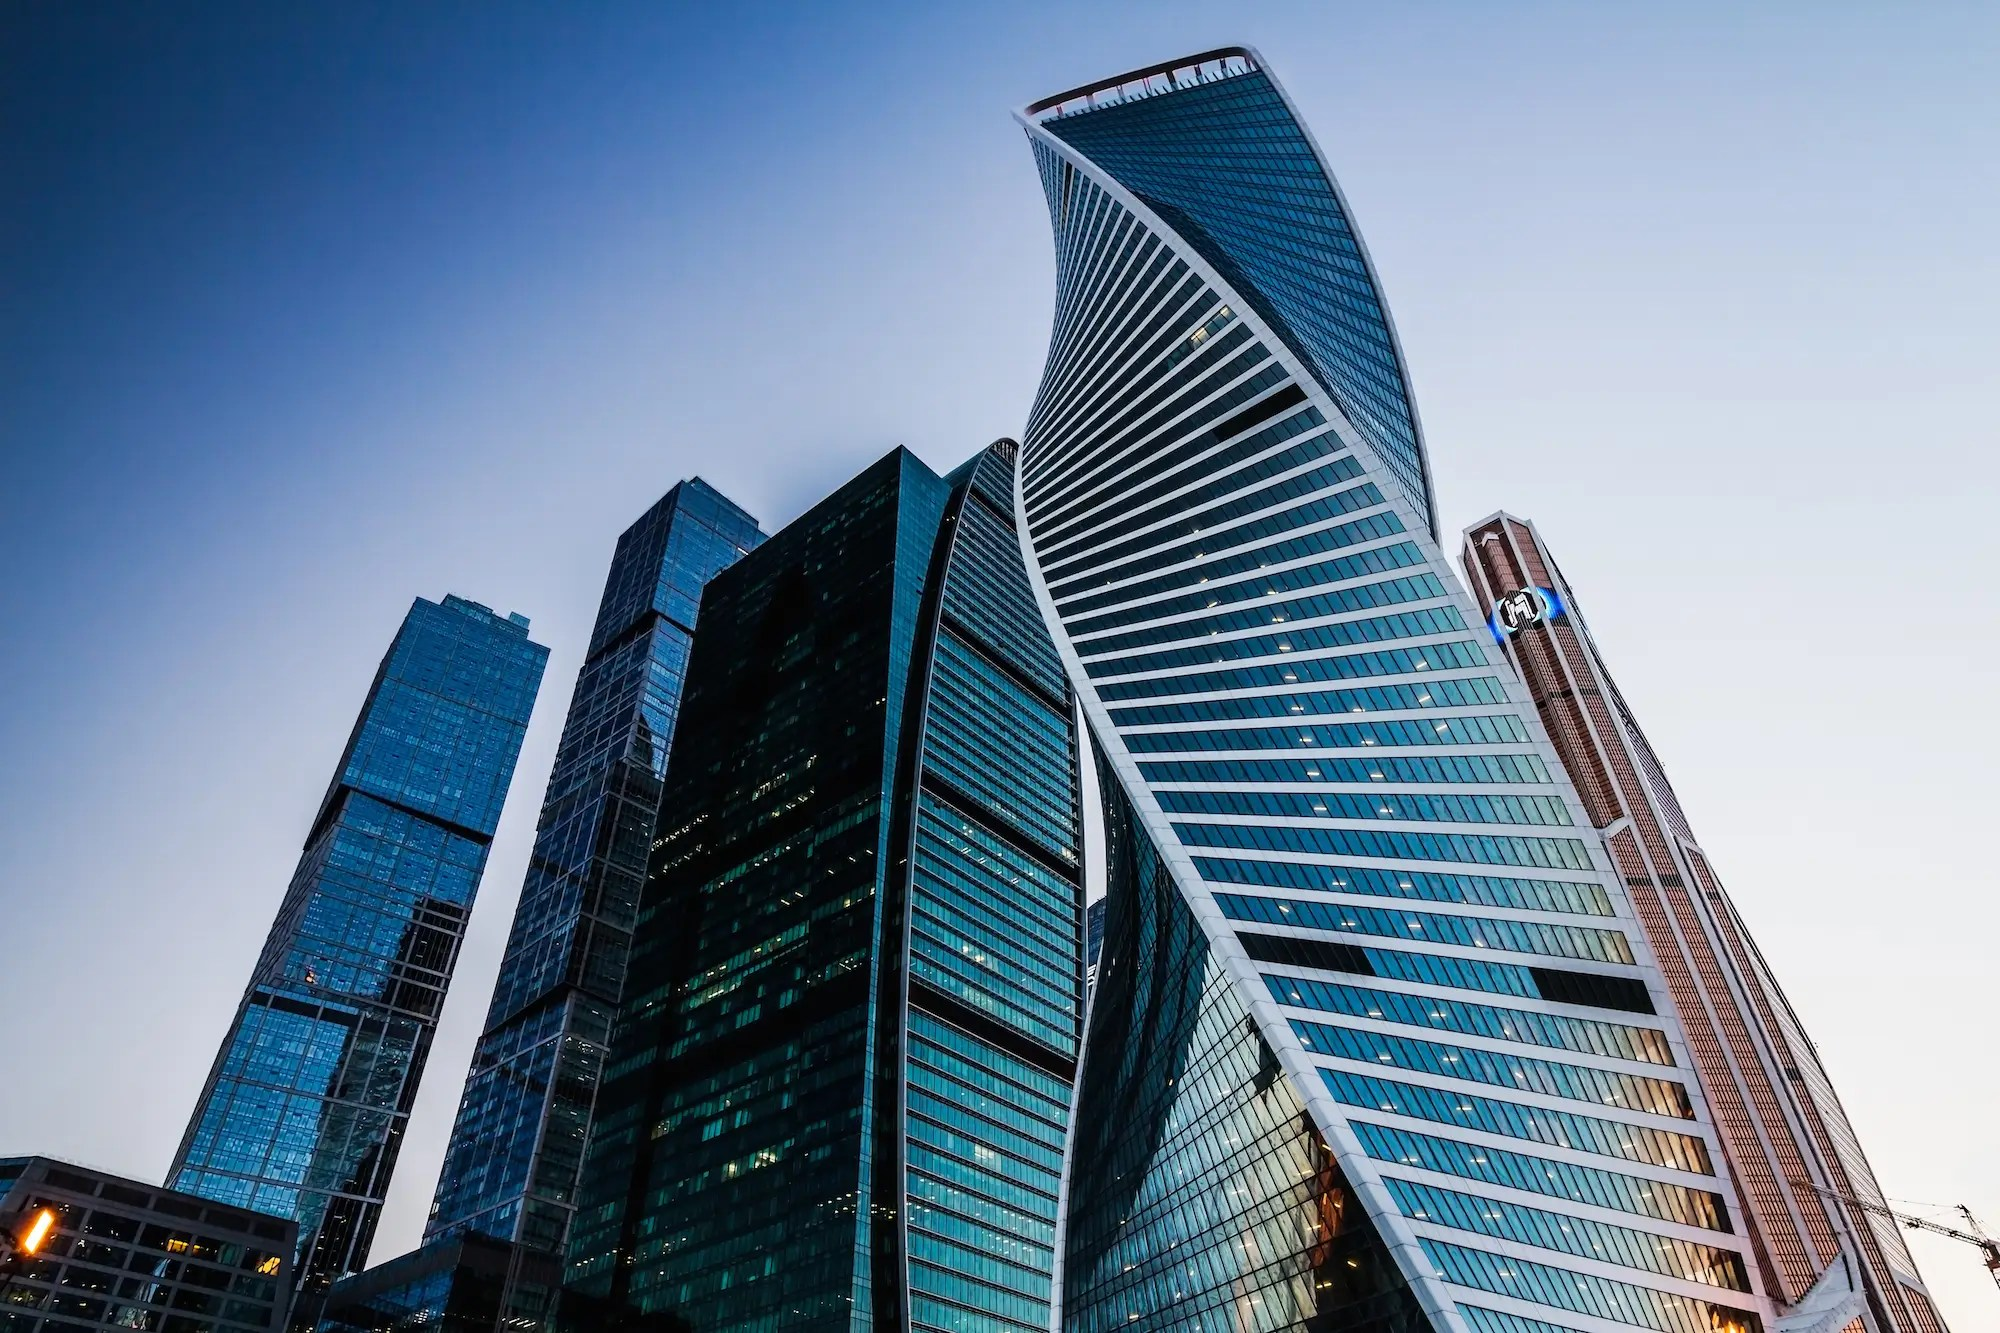 59. The Evolution Tower in Moscow looks like two ribbons twisted round each other, reminiscent of the structure of DNA.